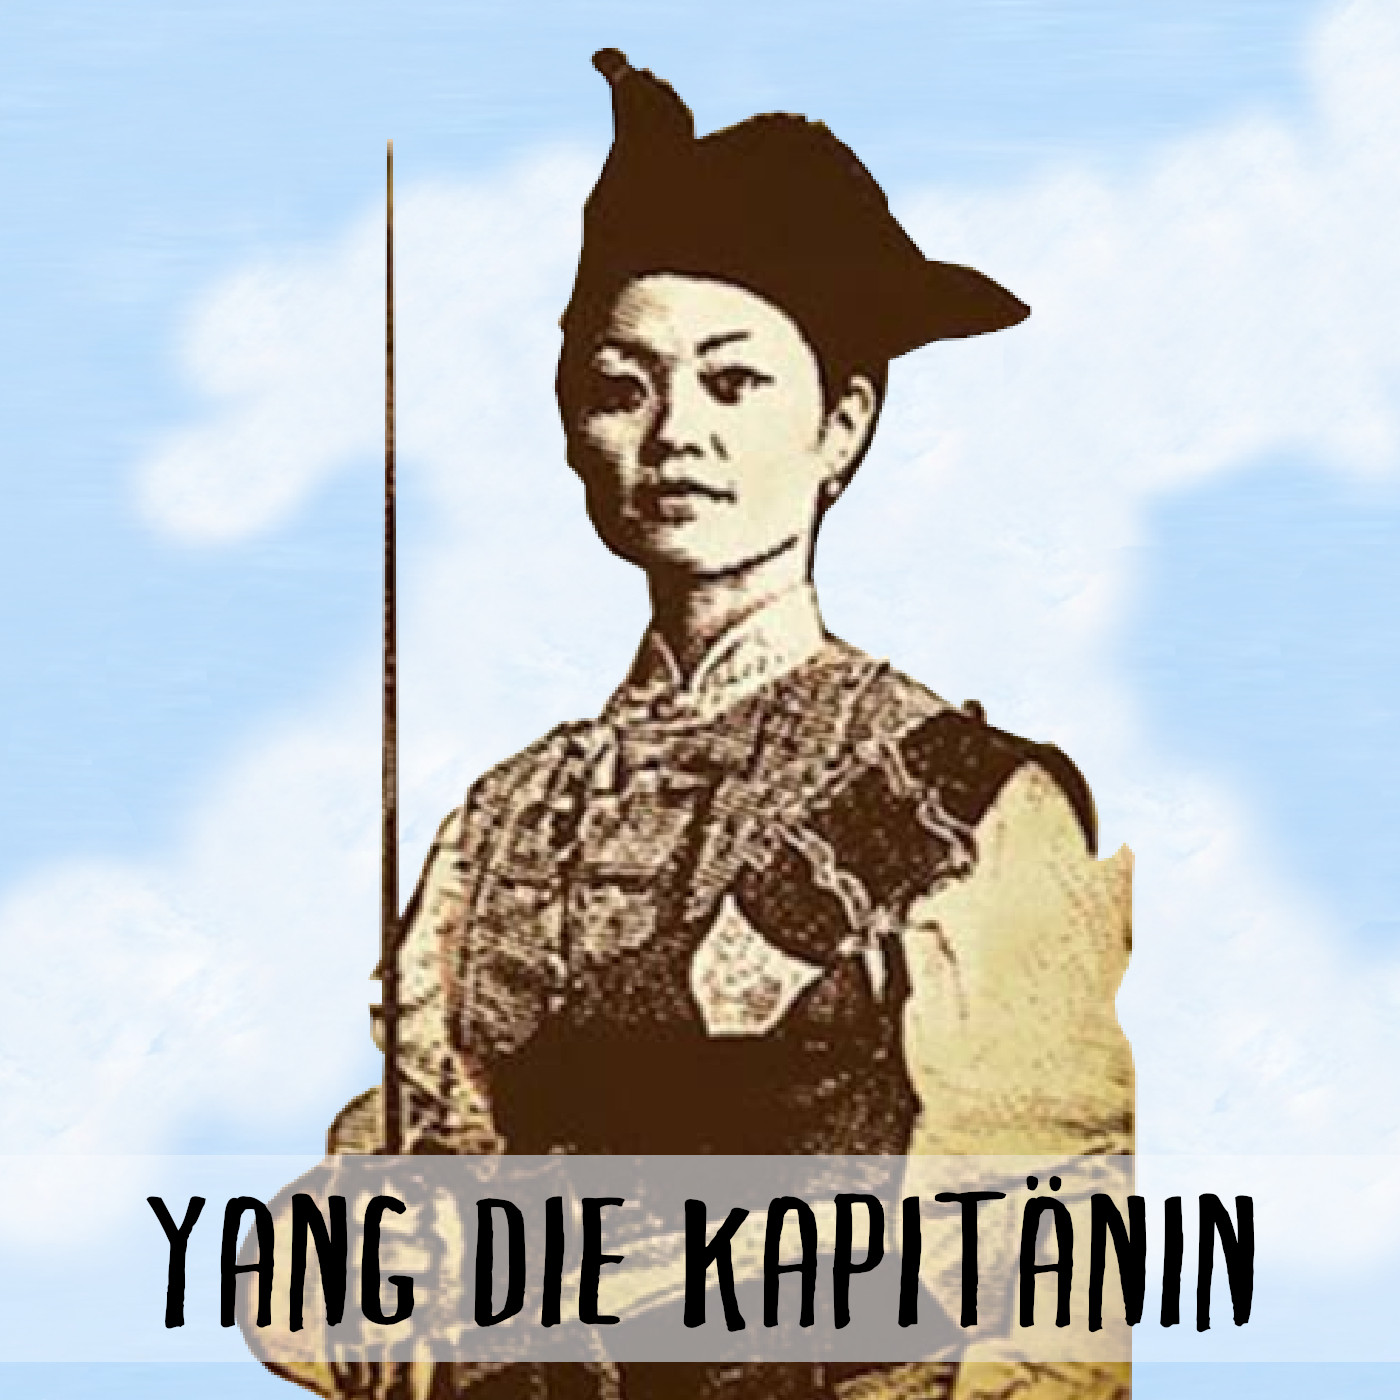 Podcast Cover: The Pirate Queen Ching Shih. Podcast Logo: Die Piratenkönigin Zheng Yisao.